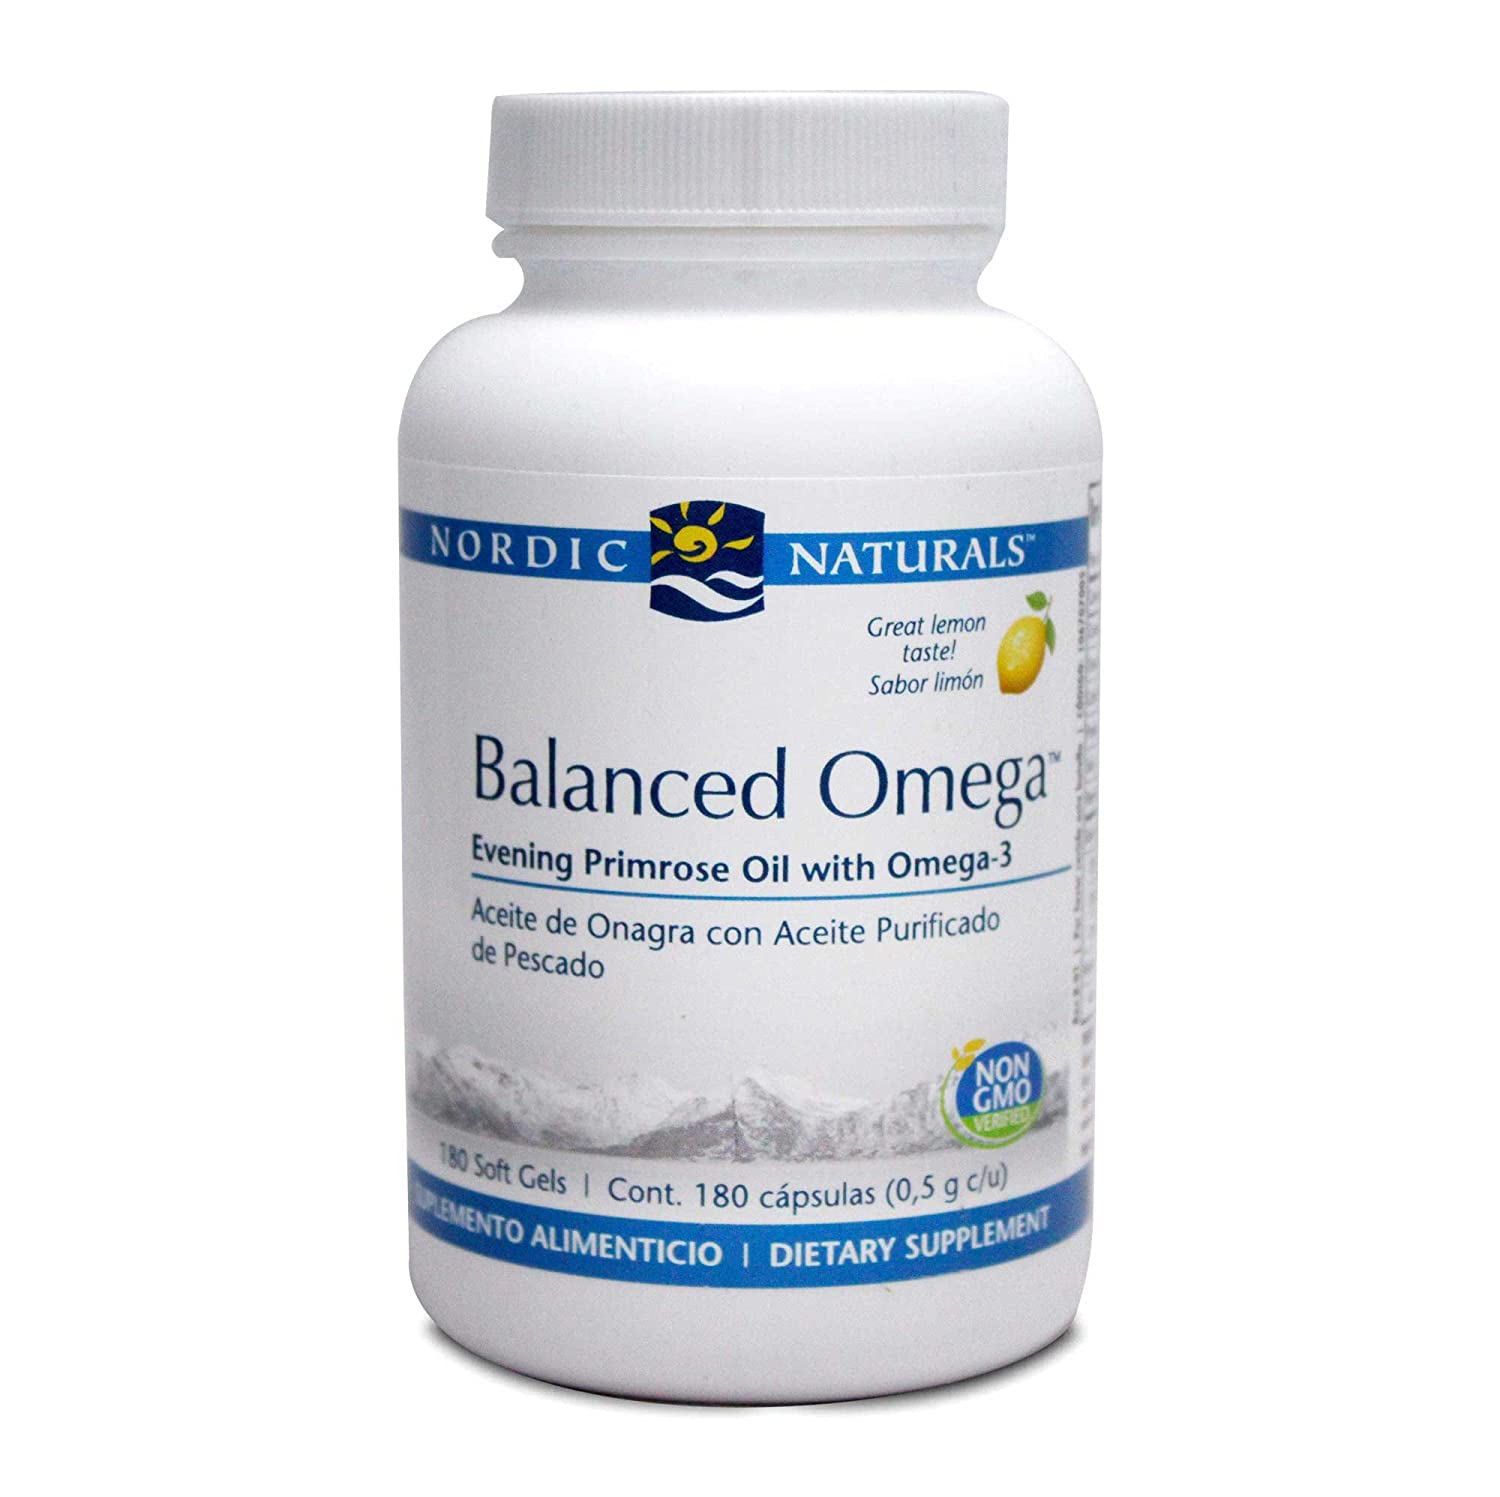 Amazon.com: Nordic Naturals - Balanced Omega Combination 180 gels [Health and Beauty]: Health & Personal Care